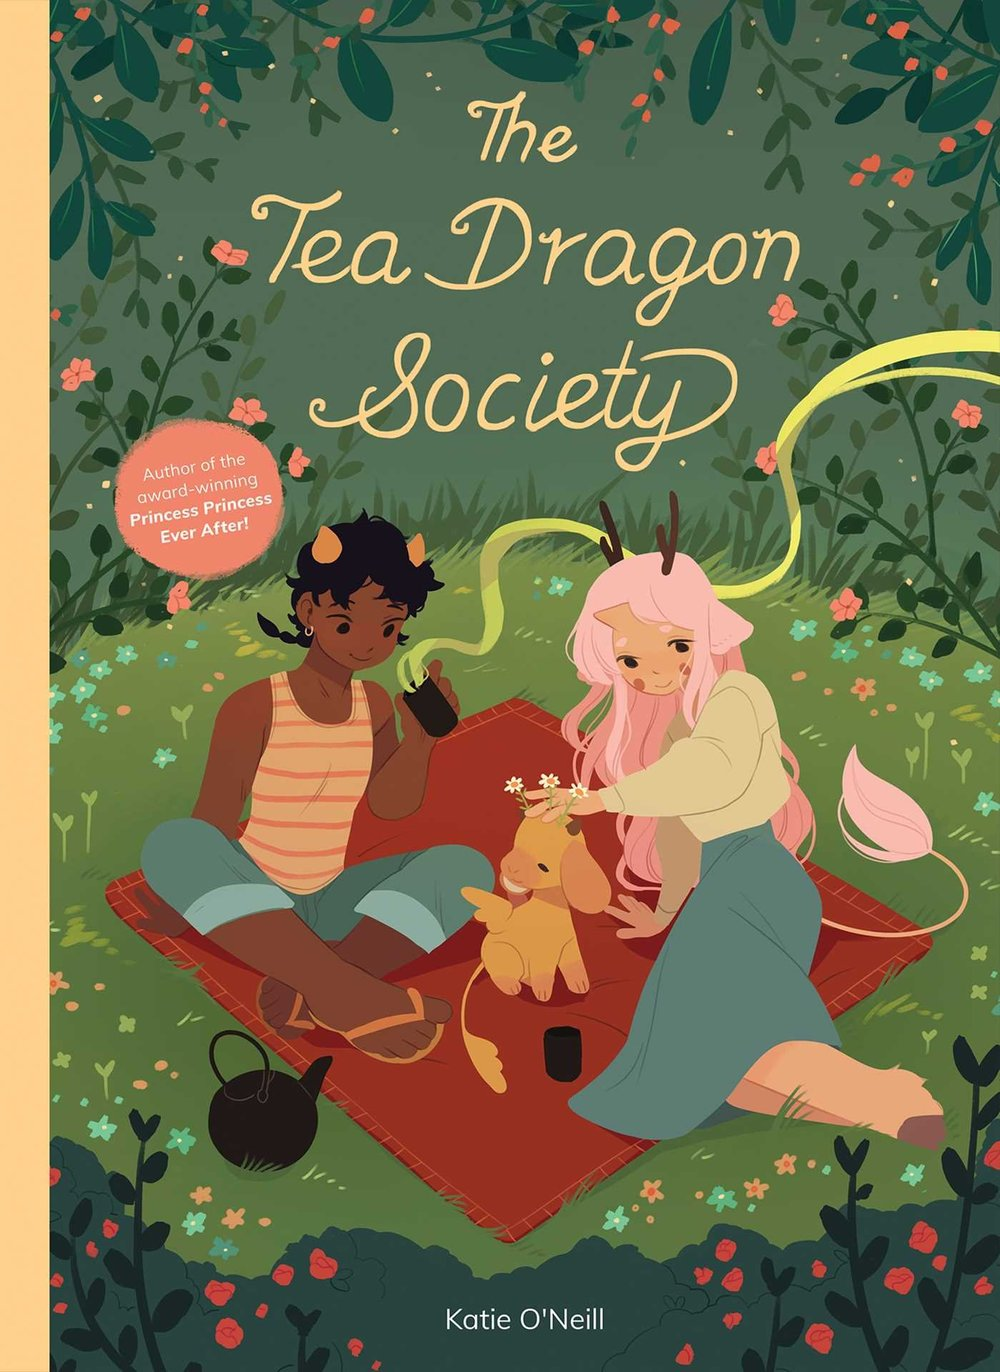 The Tea Dragon Society , by Katie O'Neill